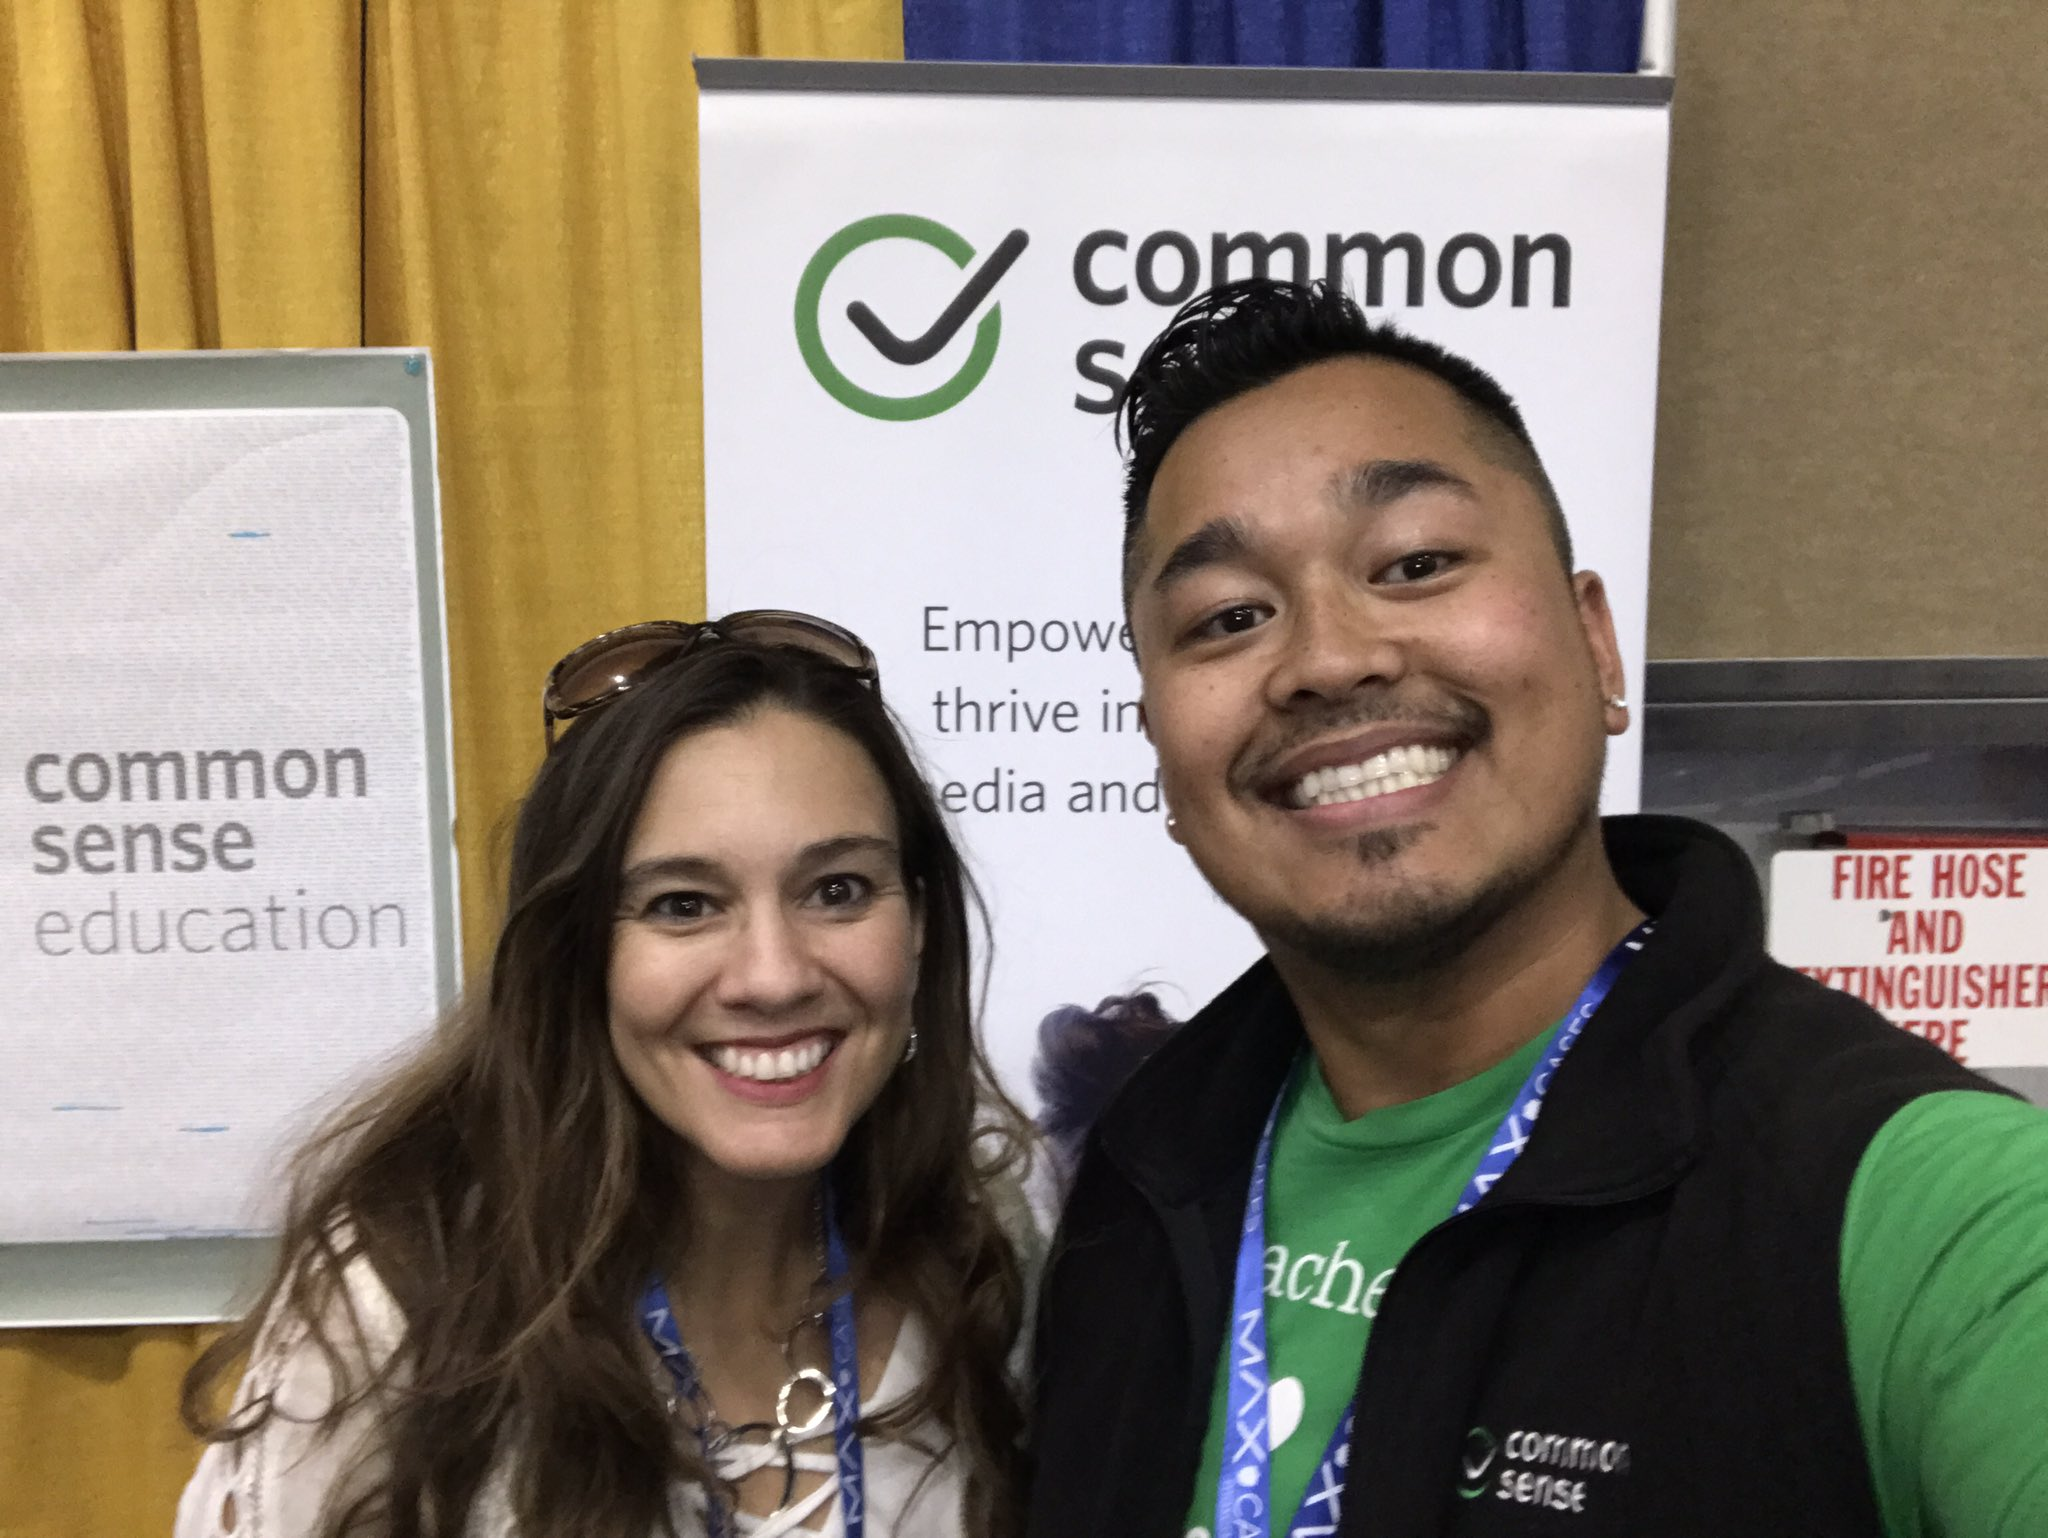 Selfie appearance by @JillBromen at our @CommonSenseEd booth here at #cue17.  Great to meet #edtech leaders this week. https://t.co/bx8p4bxJUc